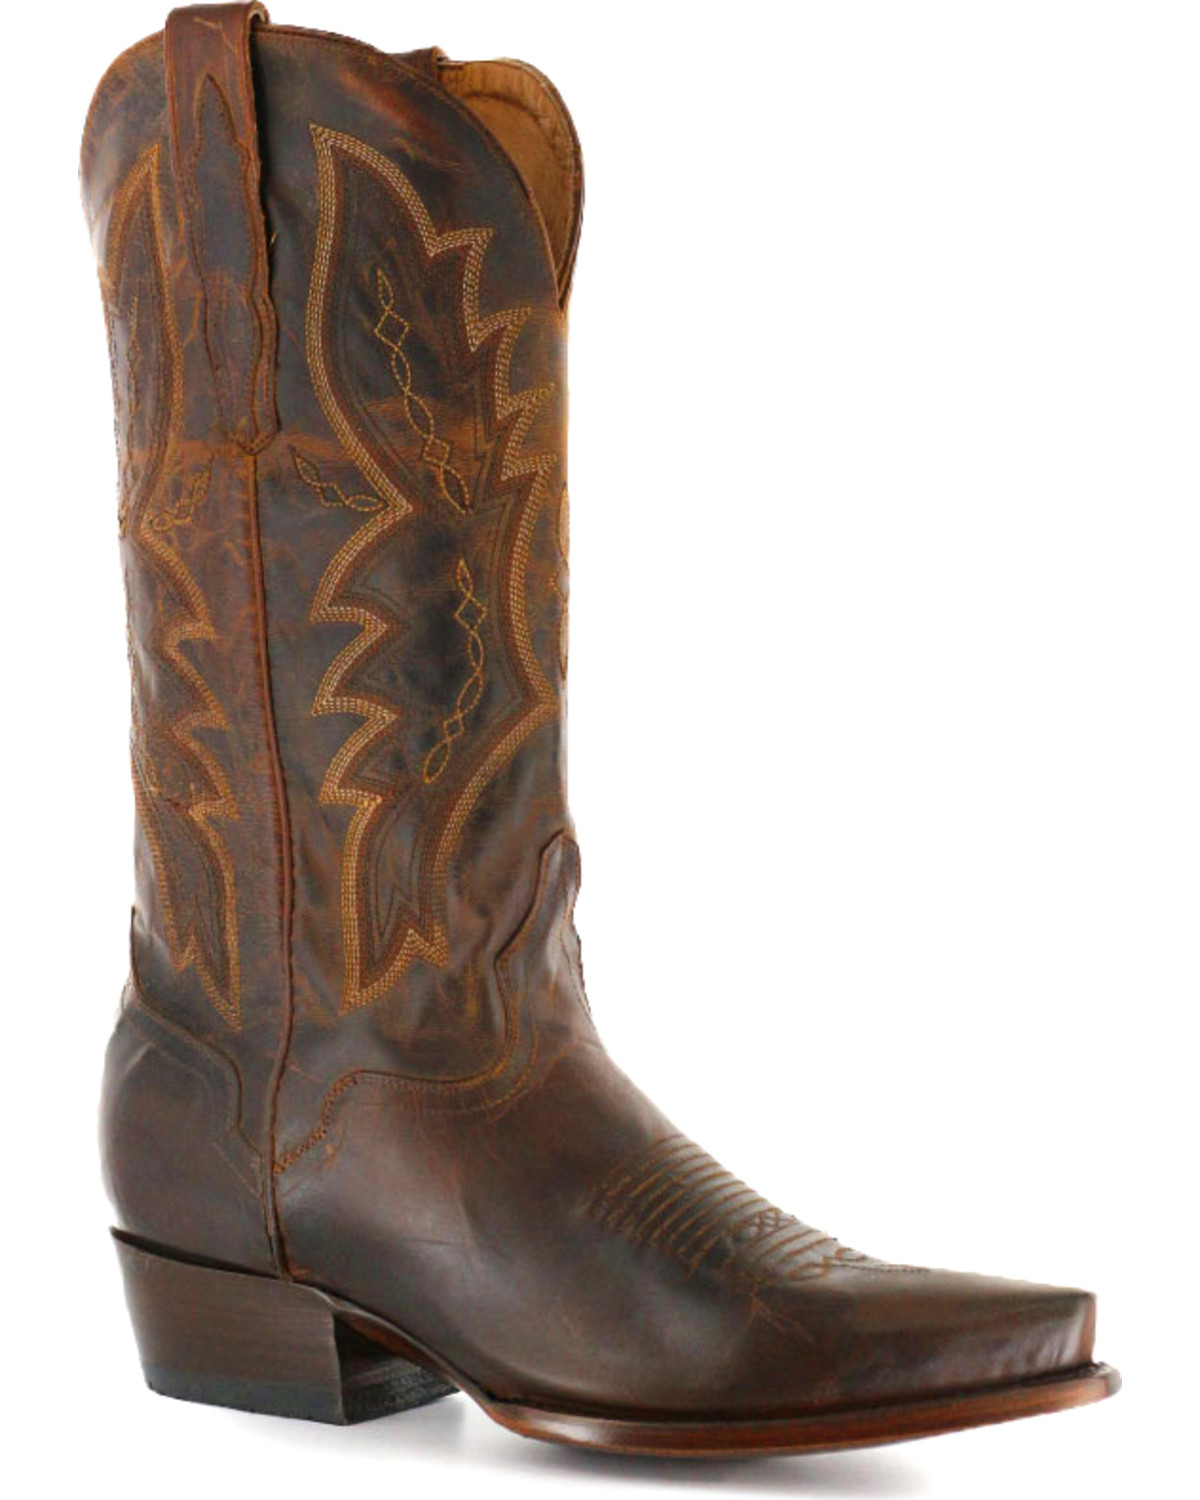 El Dorado Men's Snip Toe Distressed Goat Western Boots